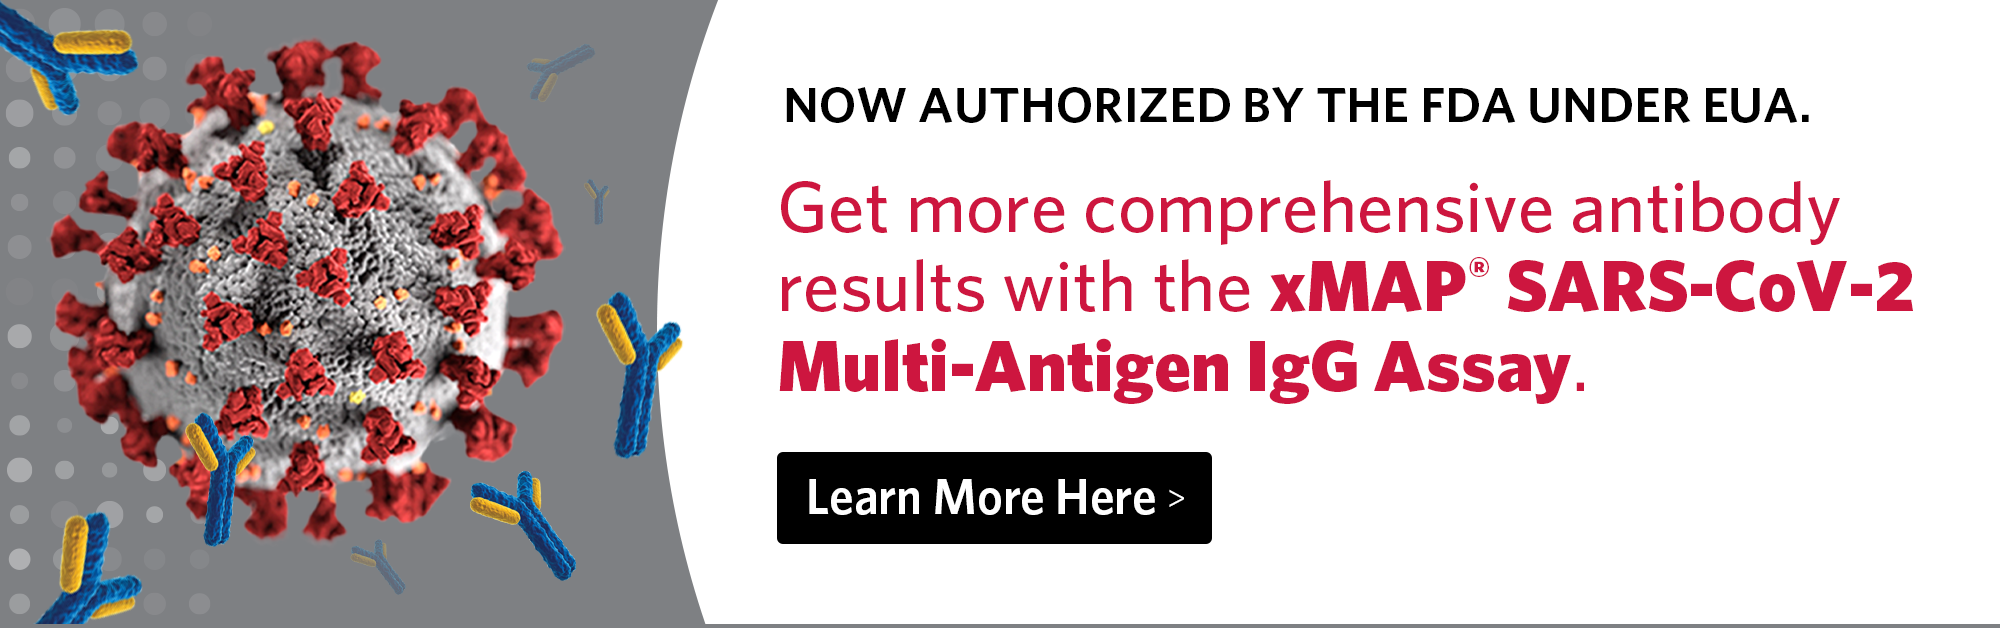 Get more comprehensive antibody results with the xMAP SARS-CoV-2 Multi-Antigen IgG Assay.